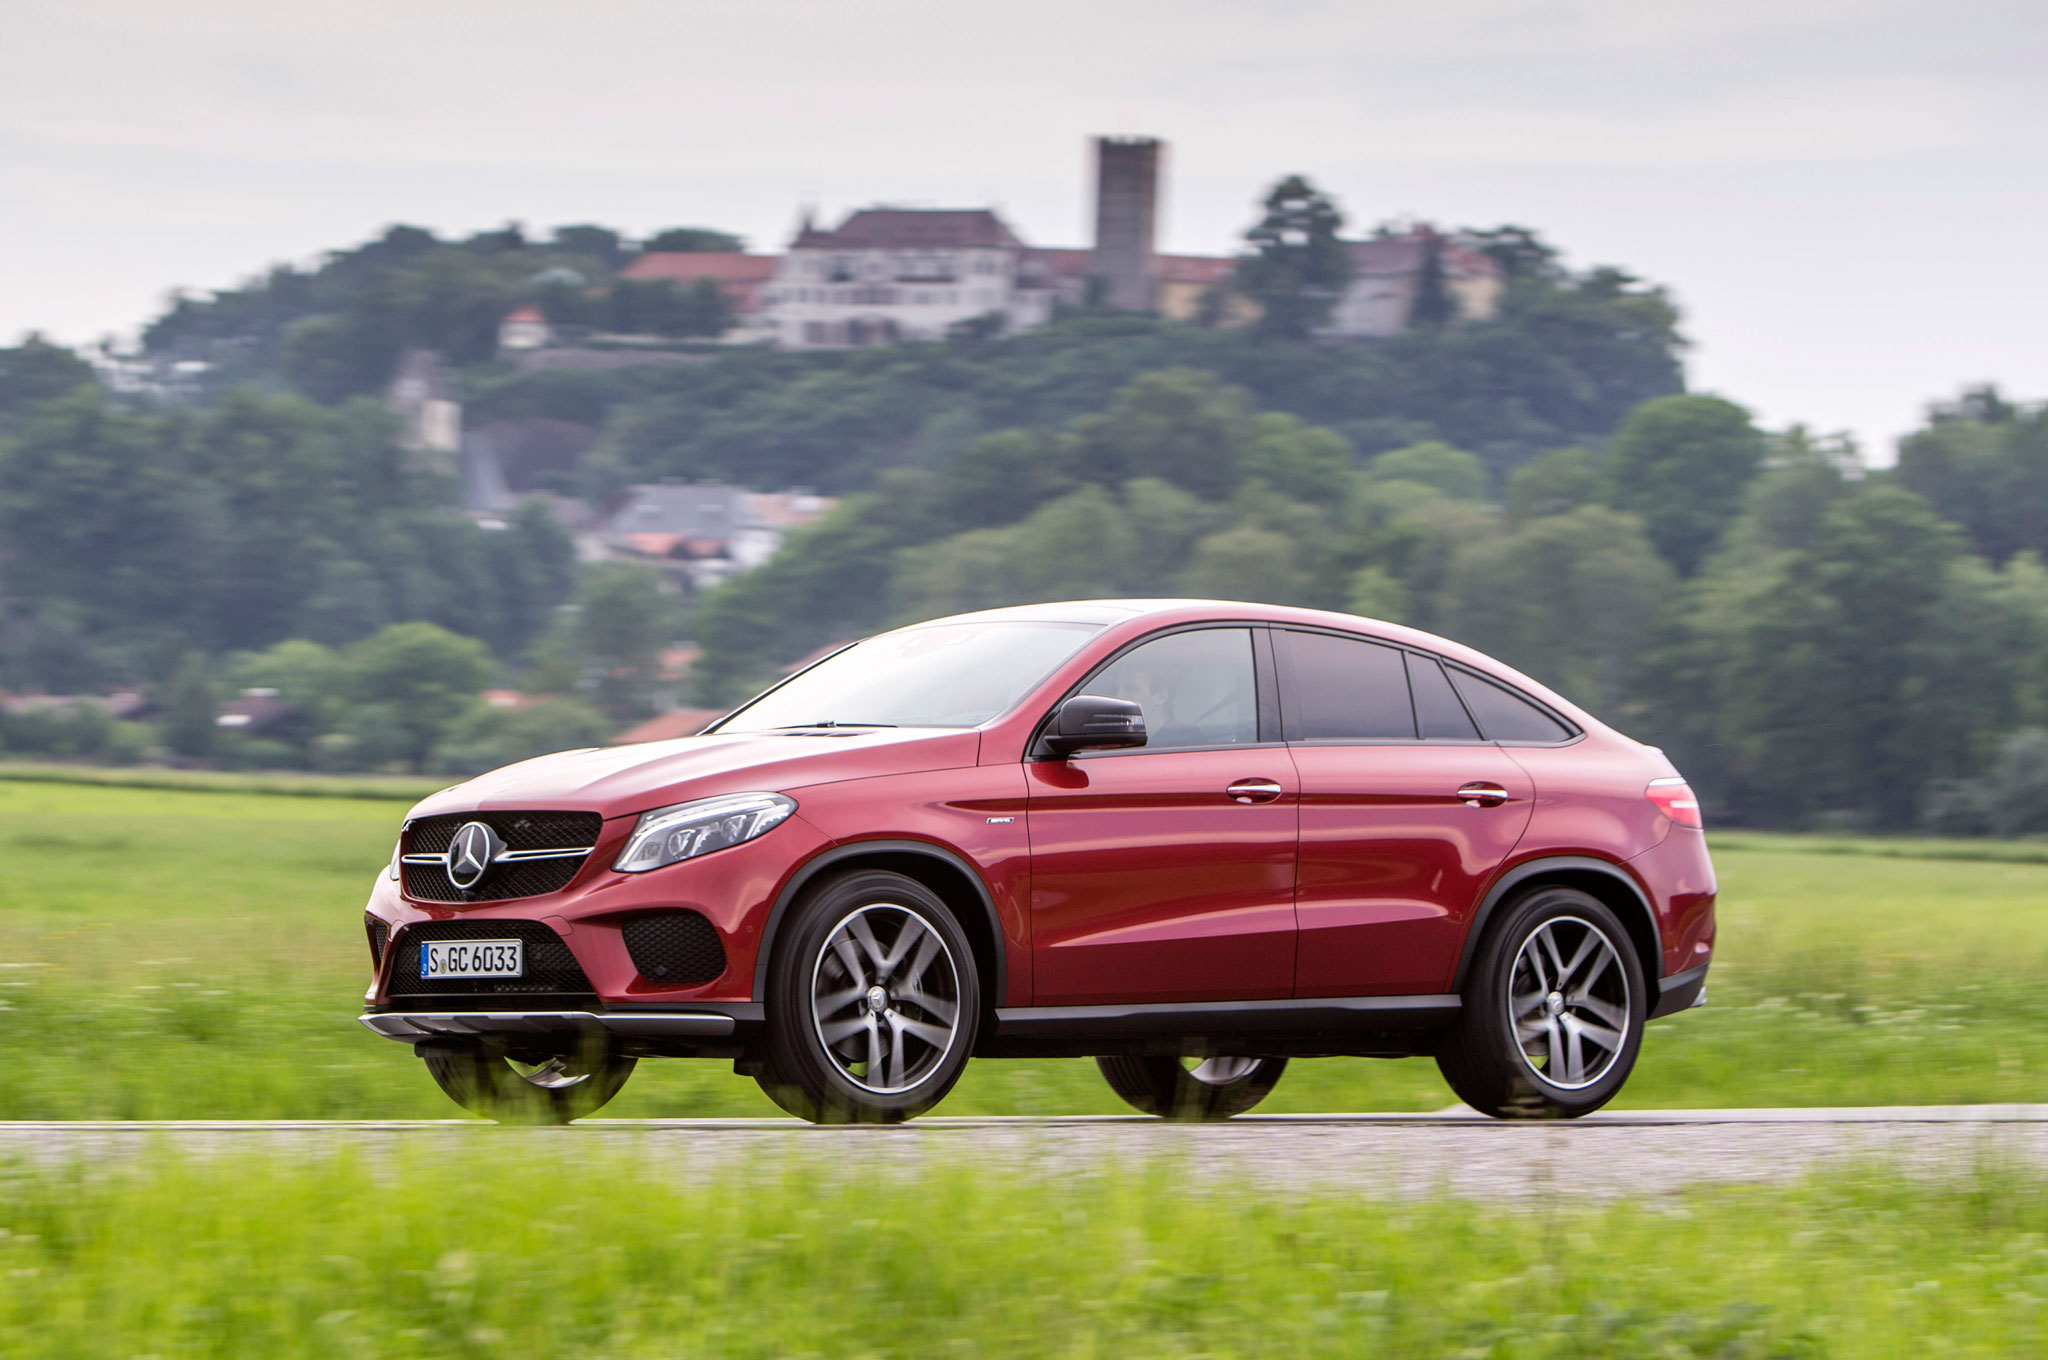 2016 mercedes benz gle450 amg 4matic coupe review